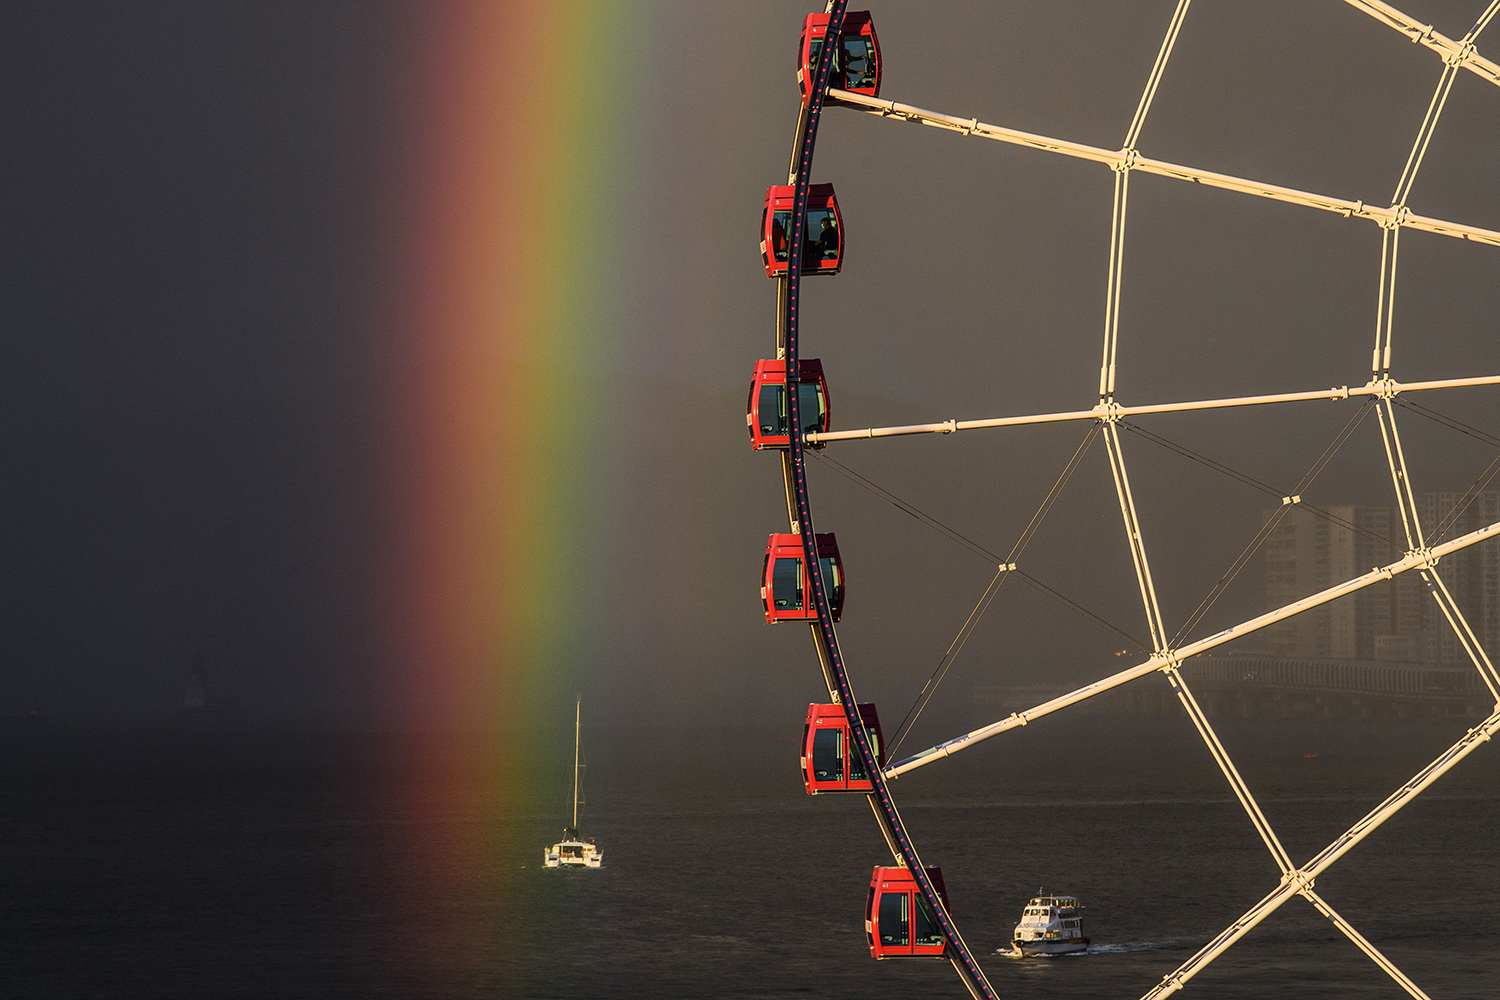 Passengers sit on a Ferris wheel in Hong Kong on June 16 as a rainbow appears after a rain shower during sunset. ANTHONY WALLACE/AFP via Getty Images